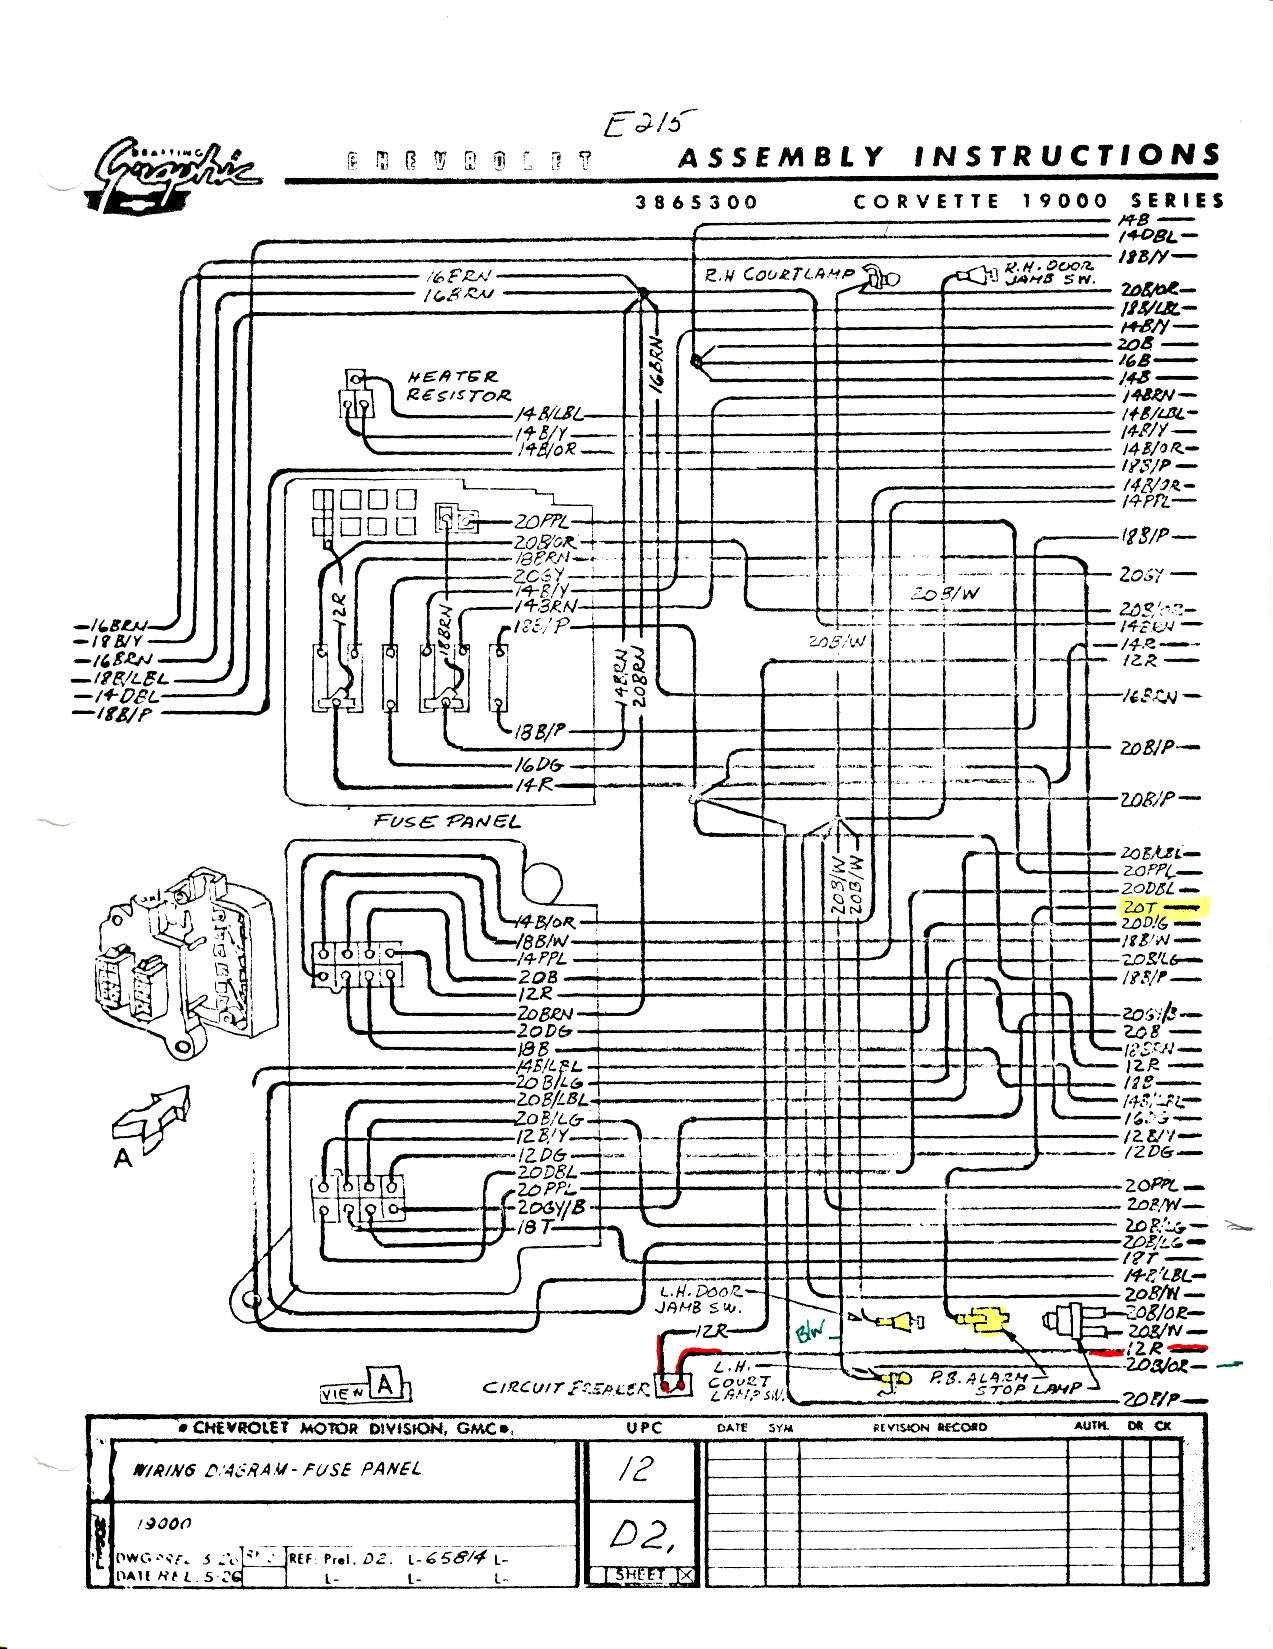 hight resolution of 1960 chevy ignition switch wiring diagram wiring library 1964 corvette wiring diagram 1958 corvette dash wiring diagram